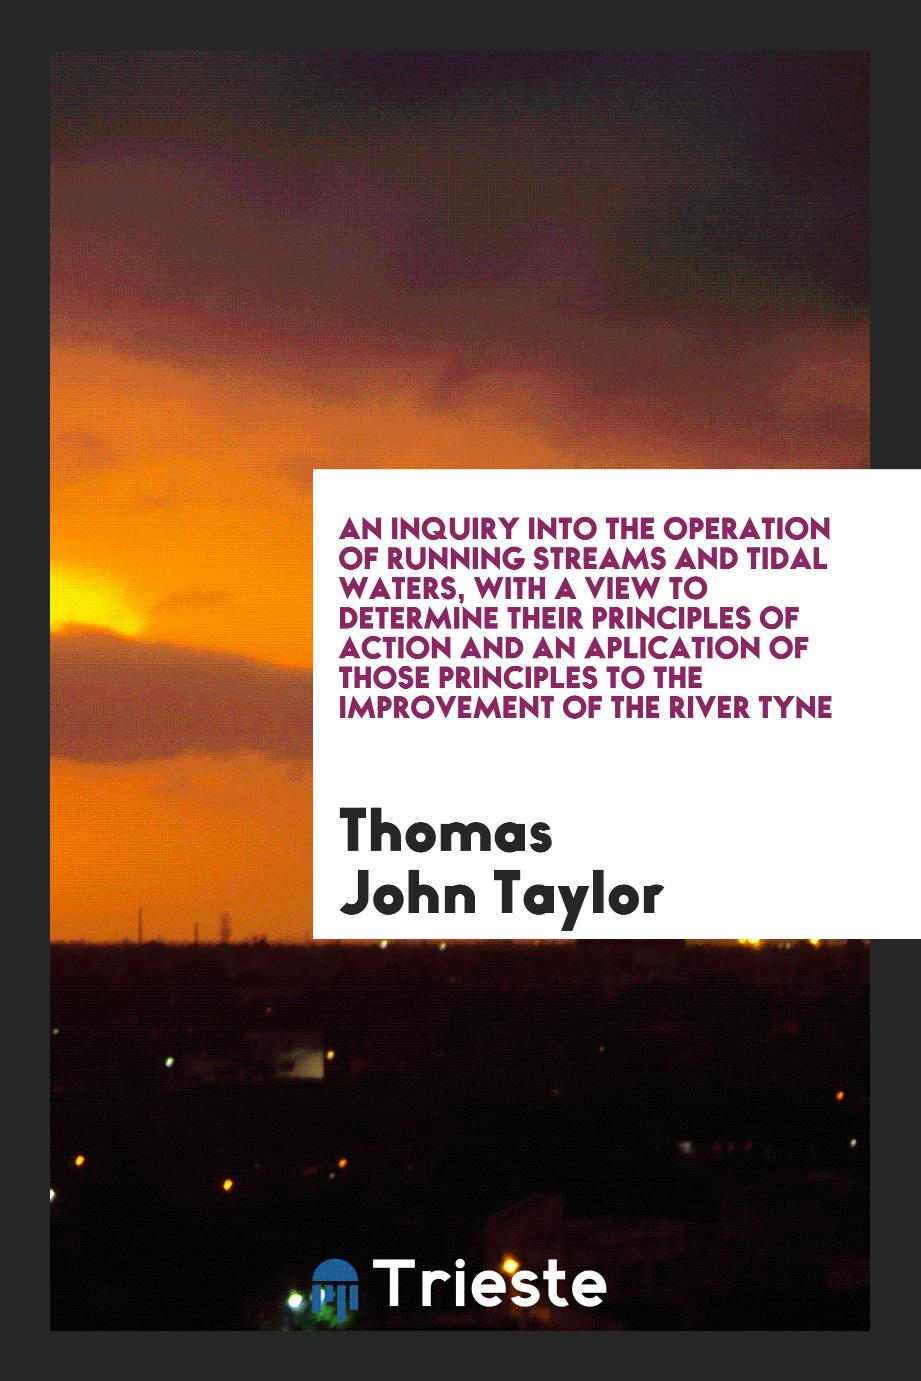 An Inquiry into the Operation of Running Streams and Tidal Waters, with a View to Determine Their Principles of Action and an Aplication of Those Principles to the Improvement of the River Tyne